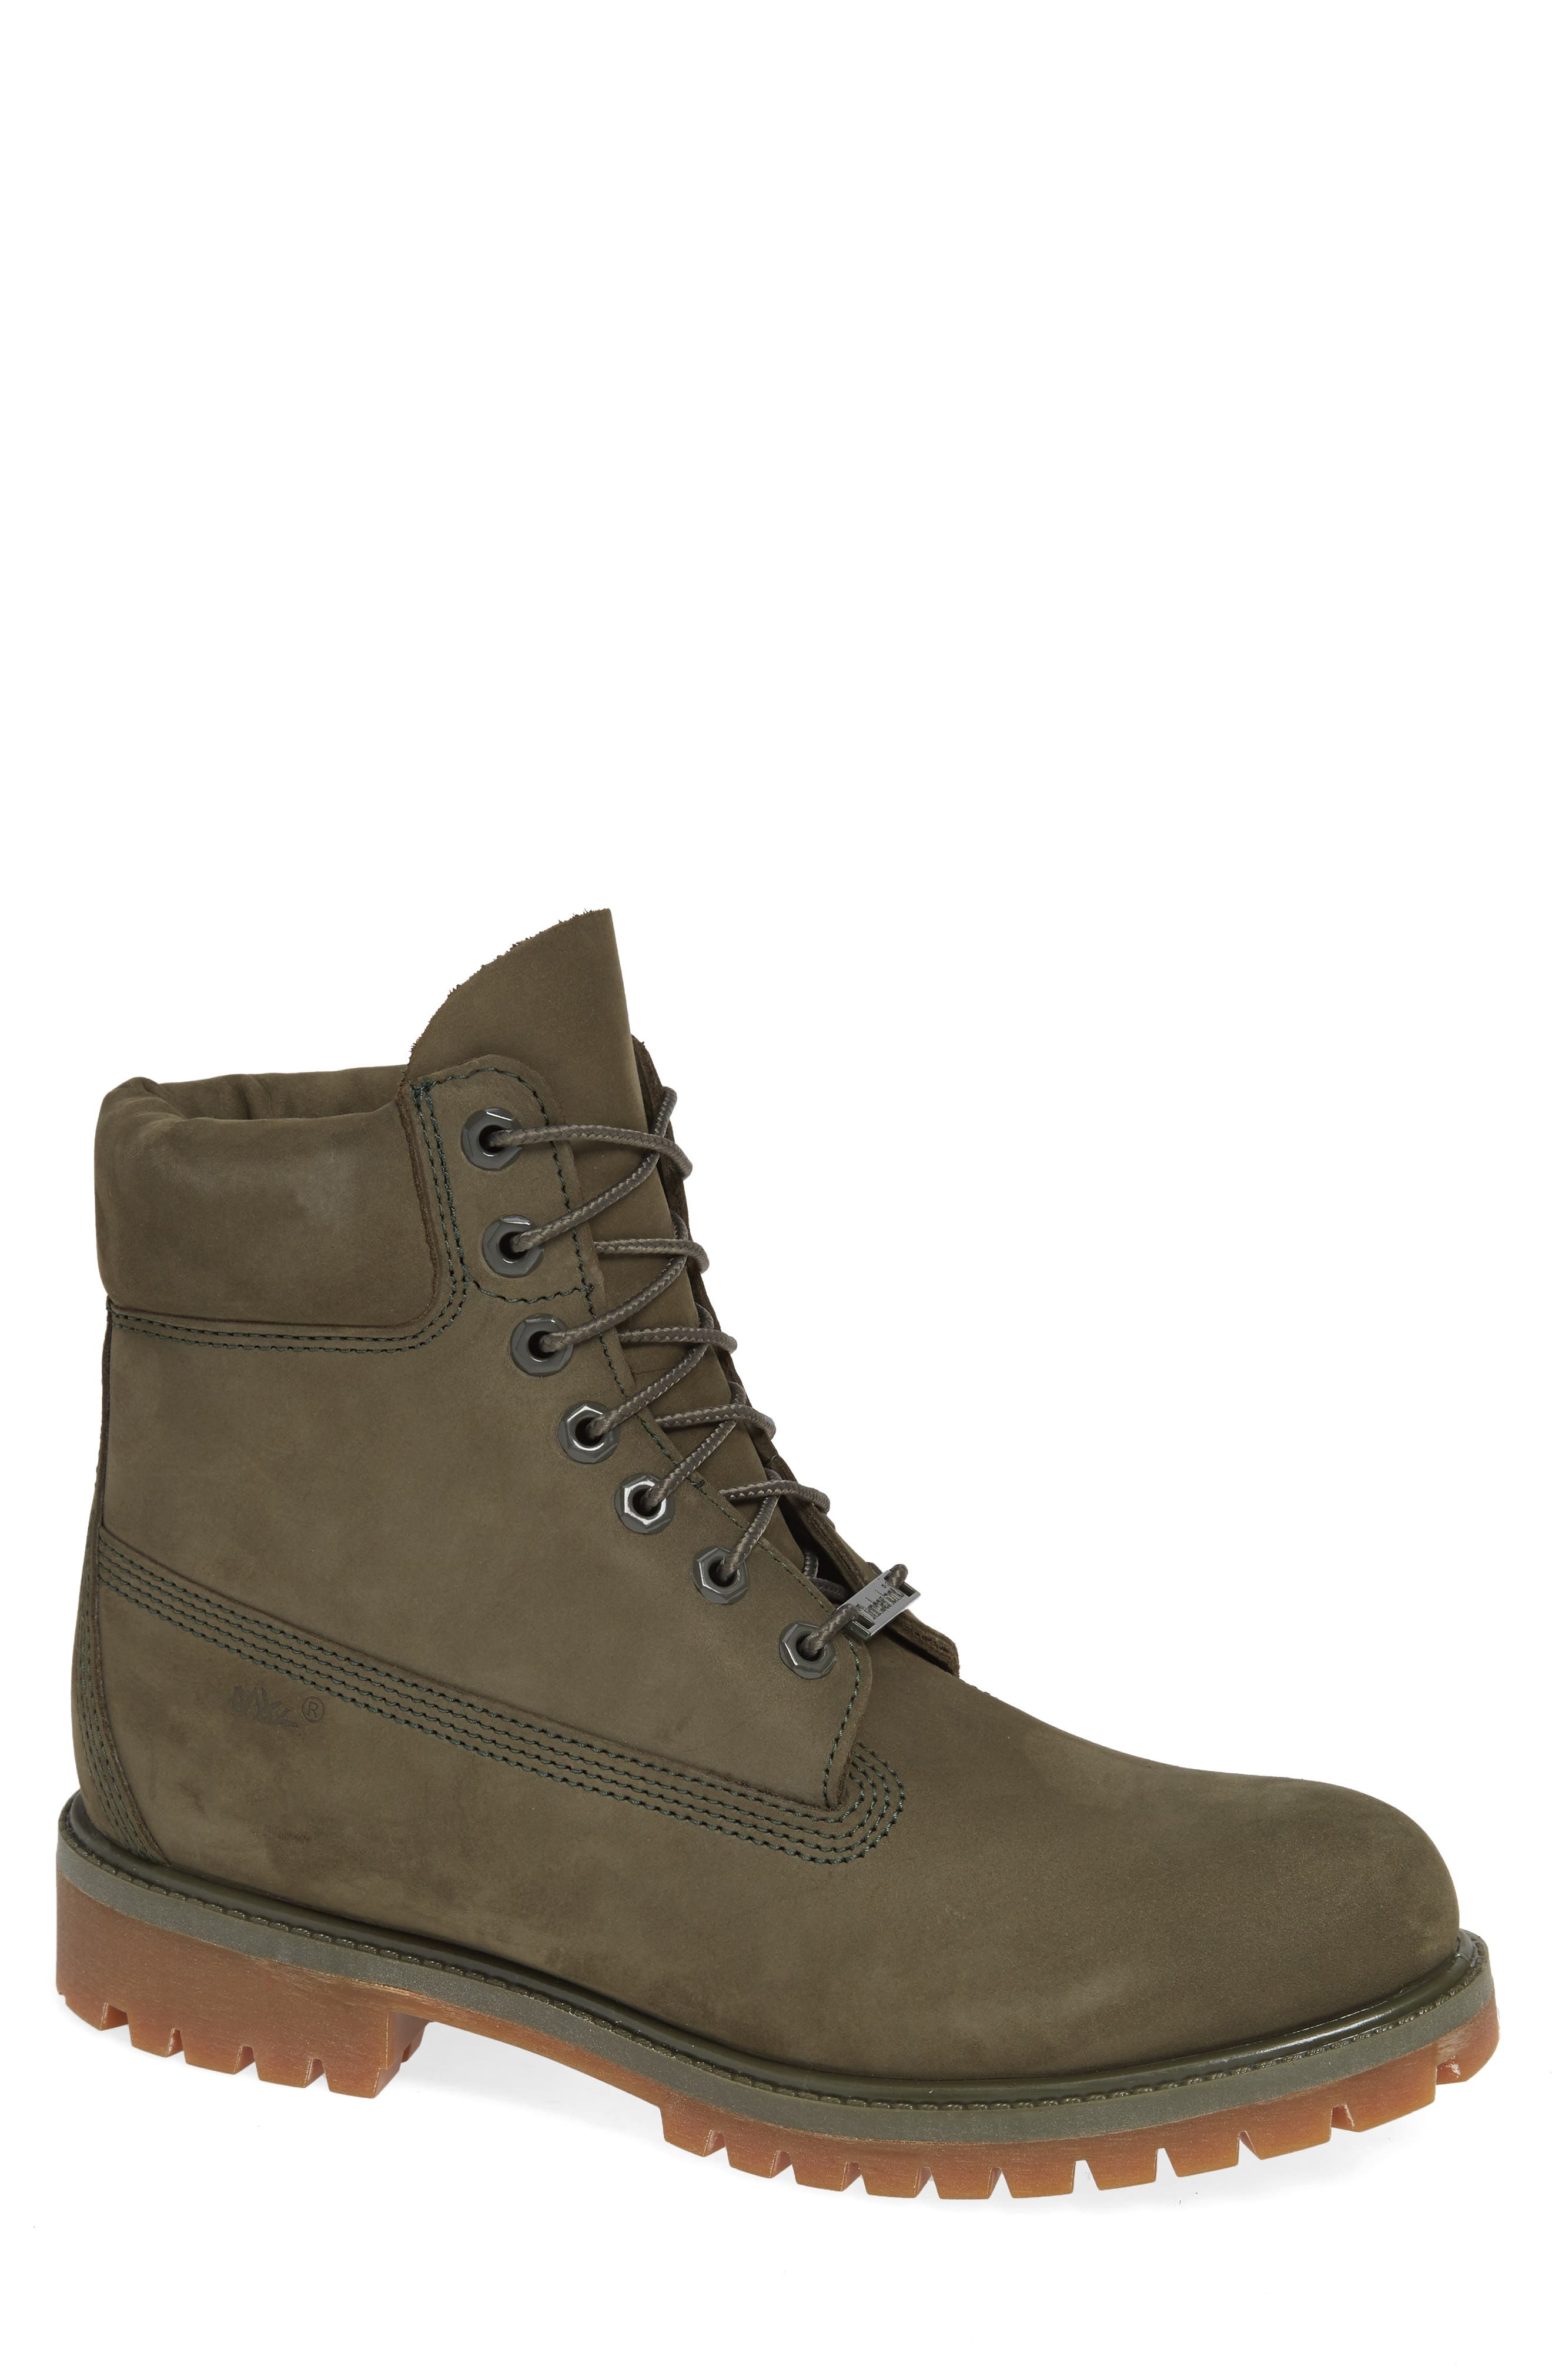 TIMBERLAND Six Inch Classic Waterproof Boots Series - Premium Waterproof Boot, Main, color, GRAPE LEAF LEATHER